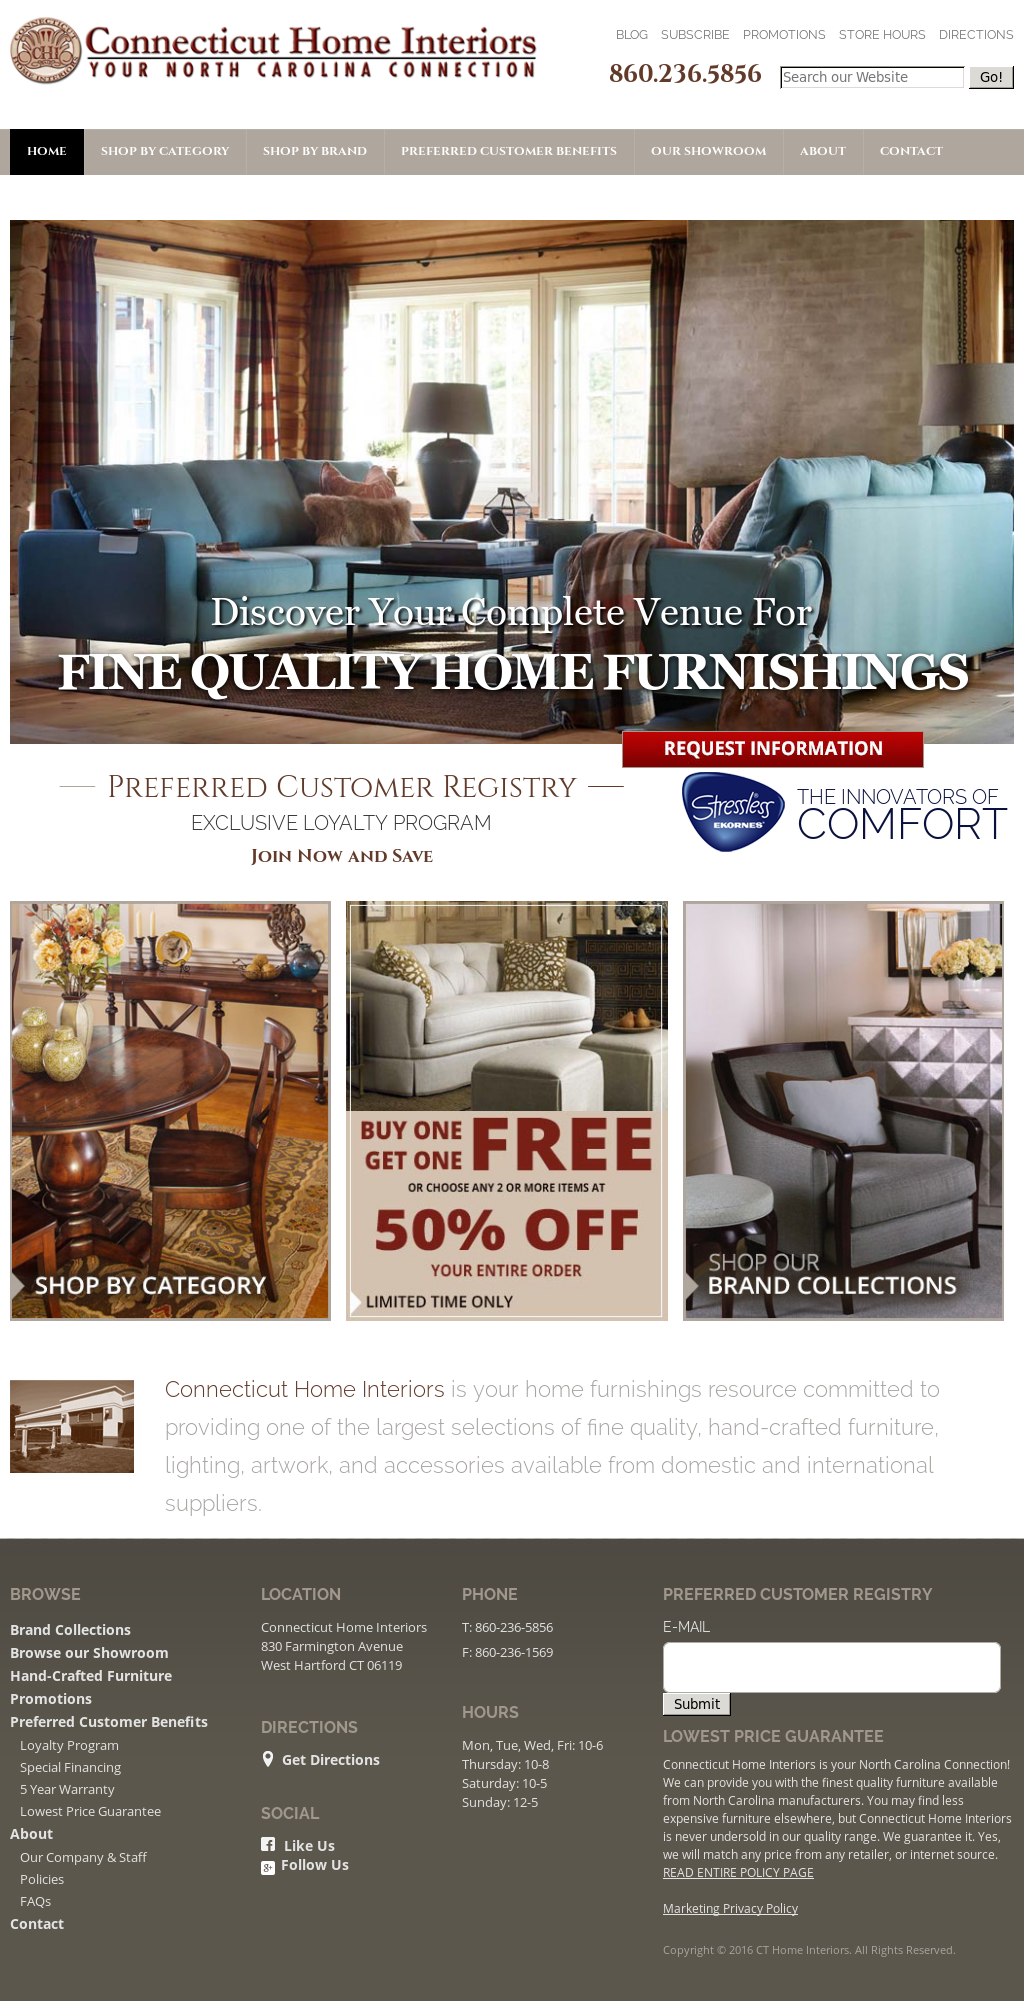 connecticut home interiors competitors revenue and employees